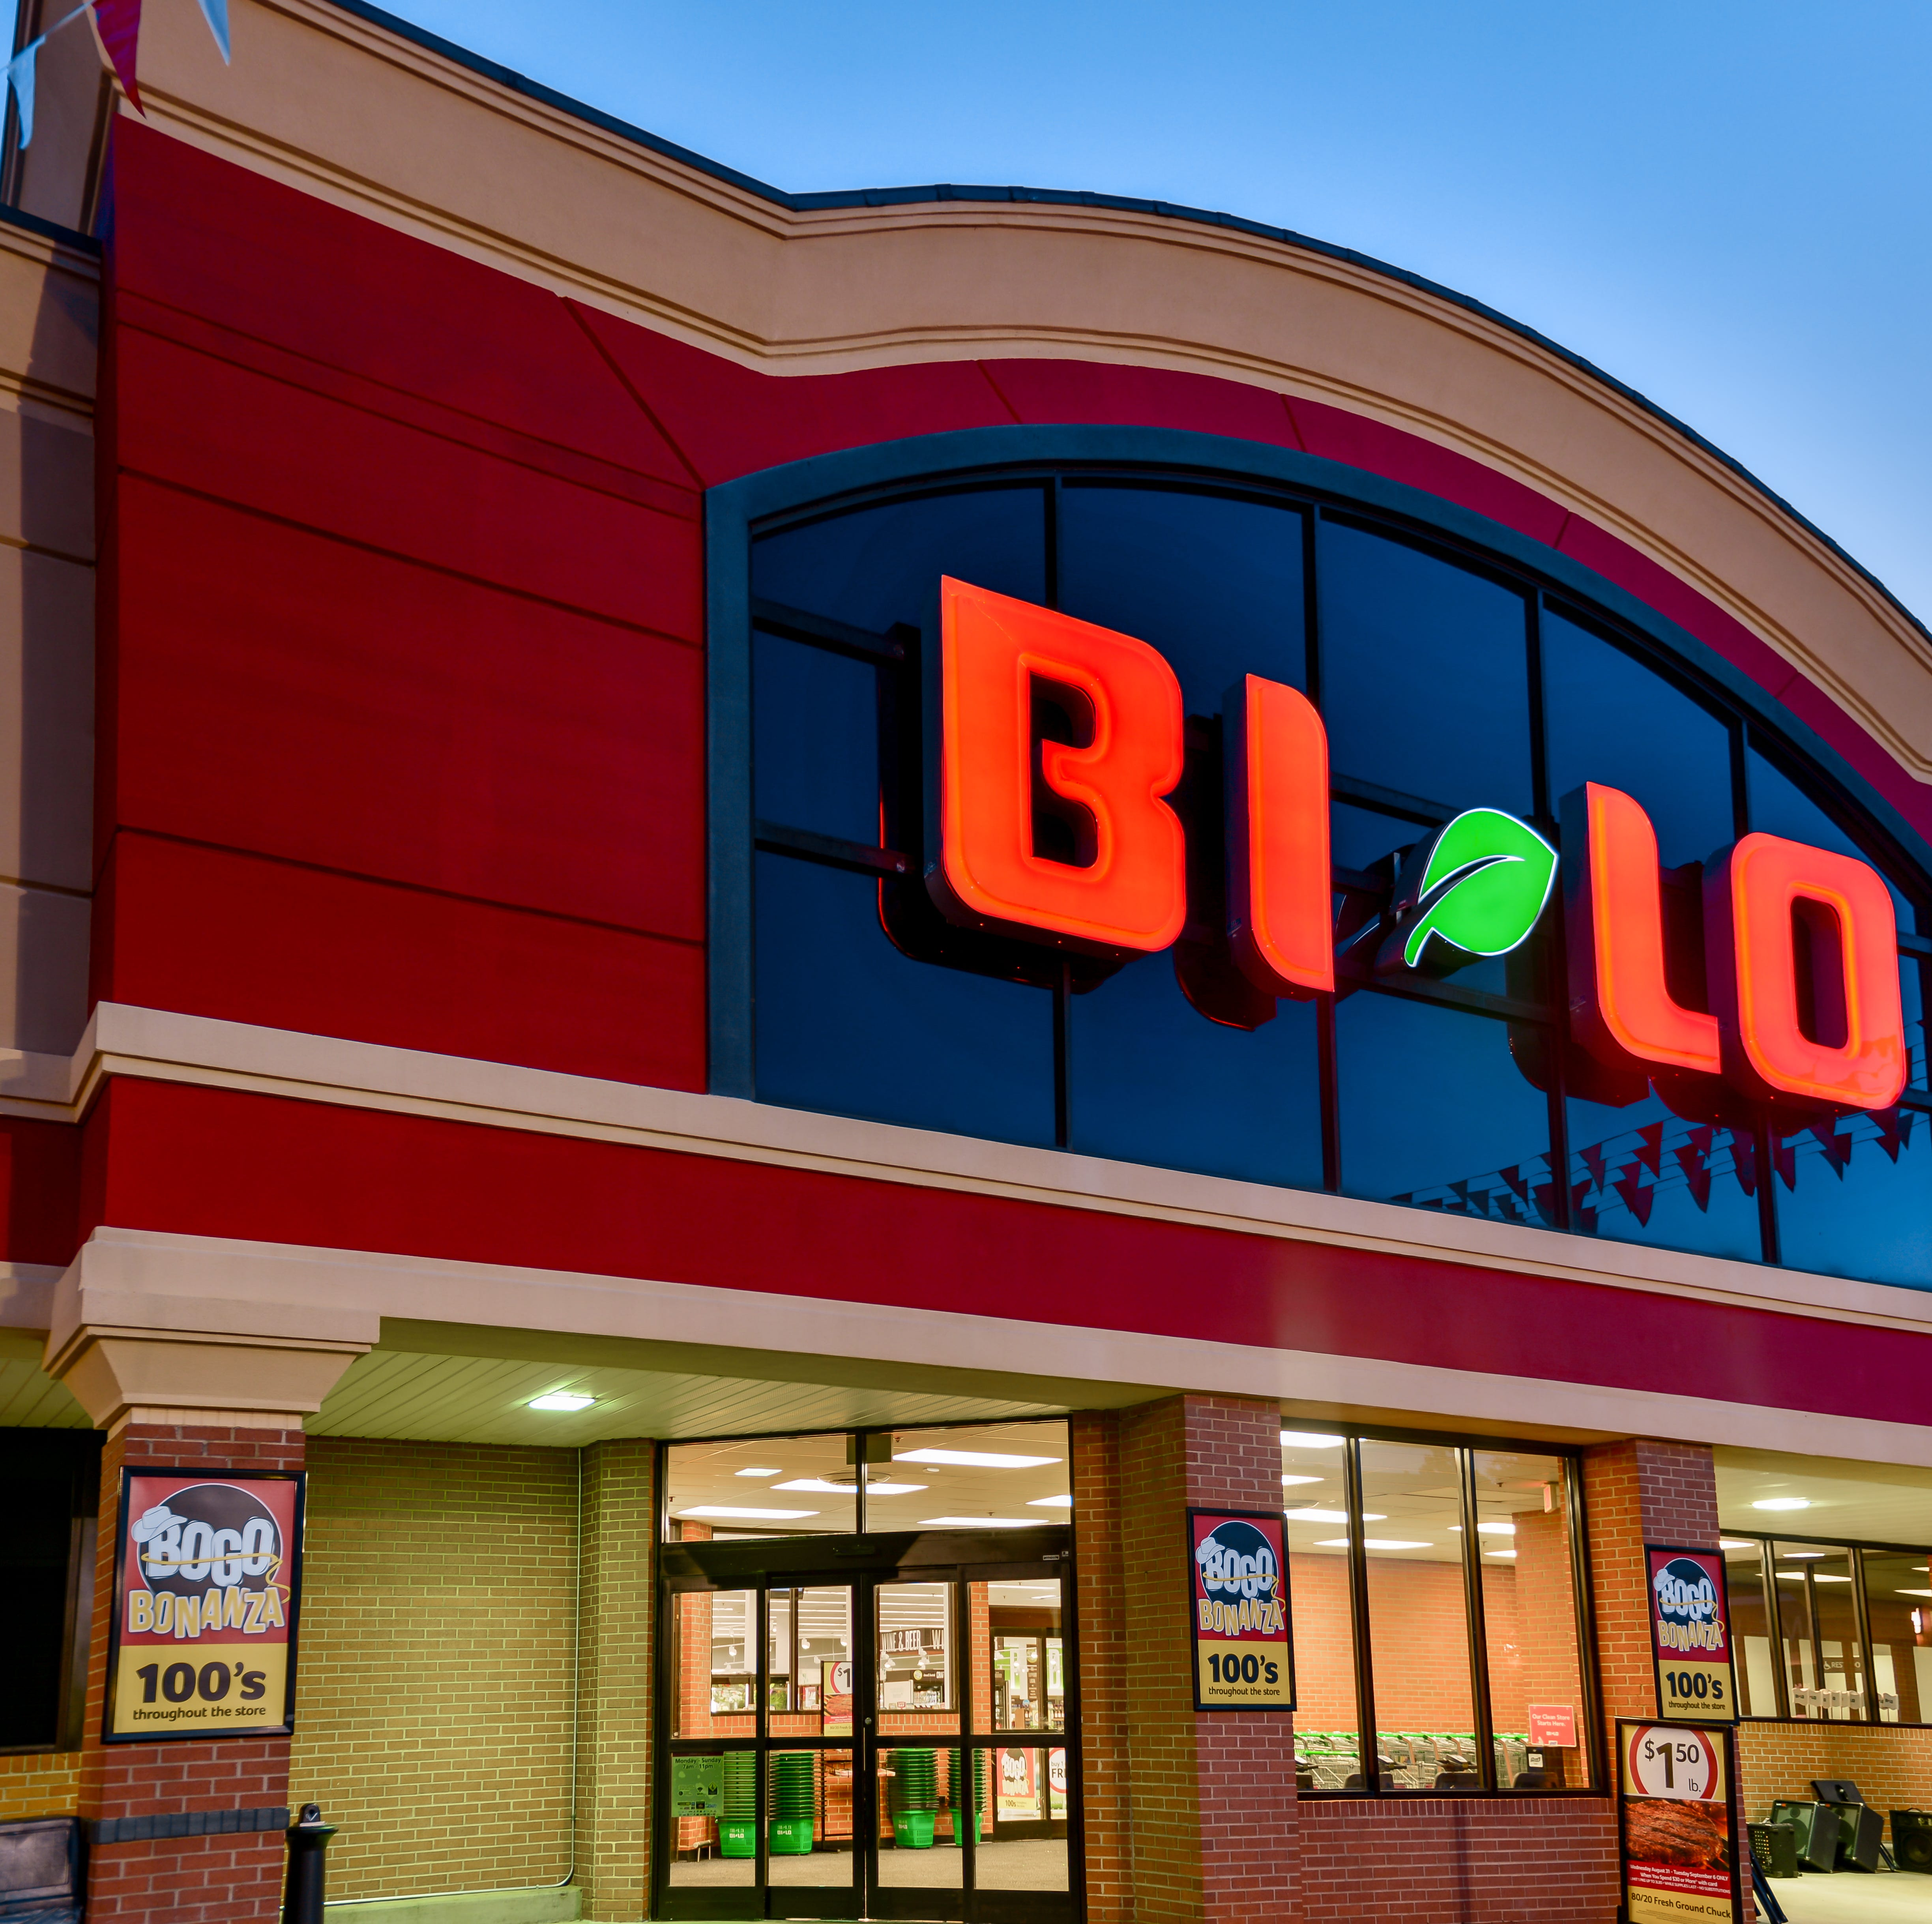 Less than a year after bankruptcy declaration, BI-LO to close four more Upstate stores